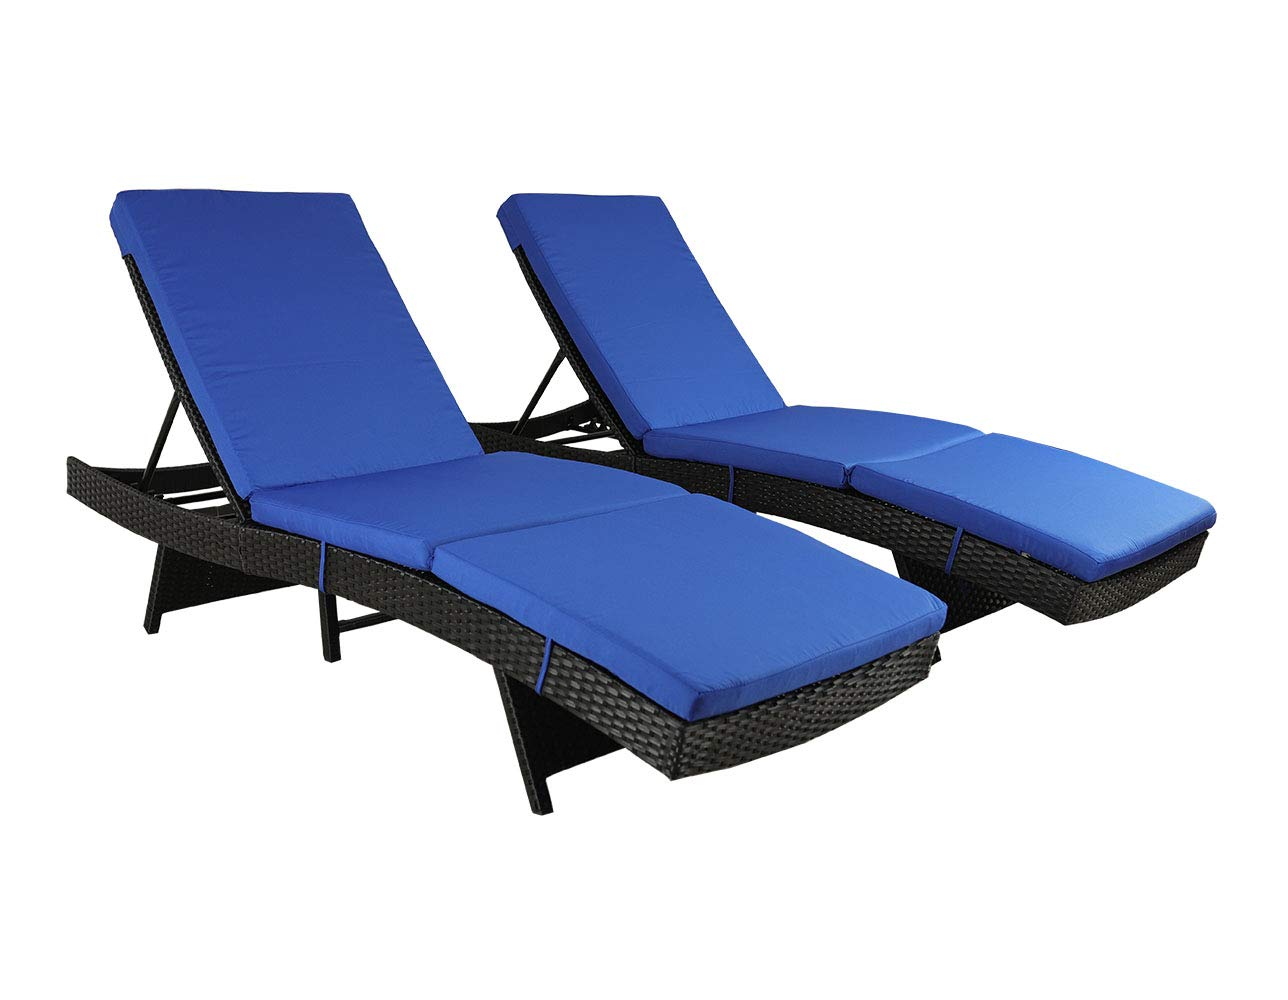 Patio Chaise Lounge Garden Furniture Patio Furniture Chairs PE Black Rattan Wicker Chair Adjustable Cushioned Outdoor Home Lounger Pool Side Chairs (Royal Blue Cushions,Set of 2)